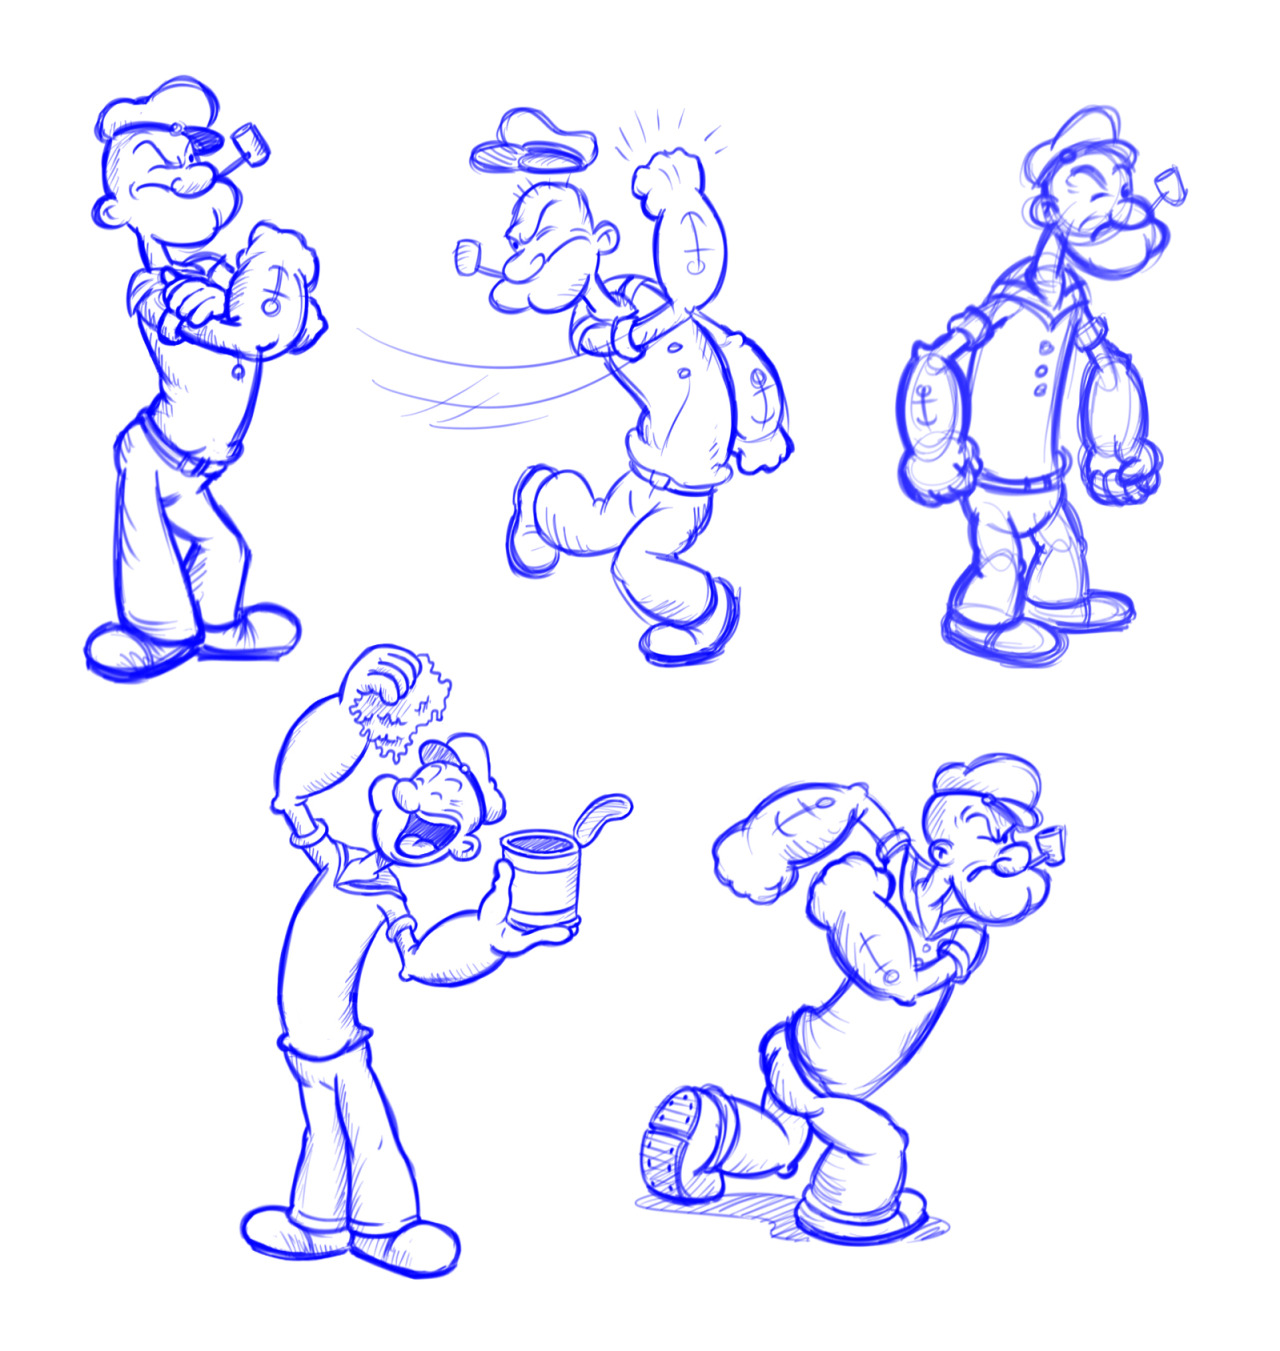 I picked up a tip from the great Jake Parker recently.  If you're in a bit of a drawing funk, copy great drawings.  It helps to just get yourself into a flow and you build up a mental image bank that you can tap into later.  So I drew some popeye sketches today.  Such a fun character to draw.  I love the way his body twists around.